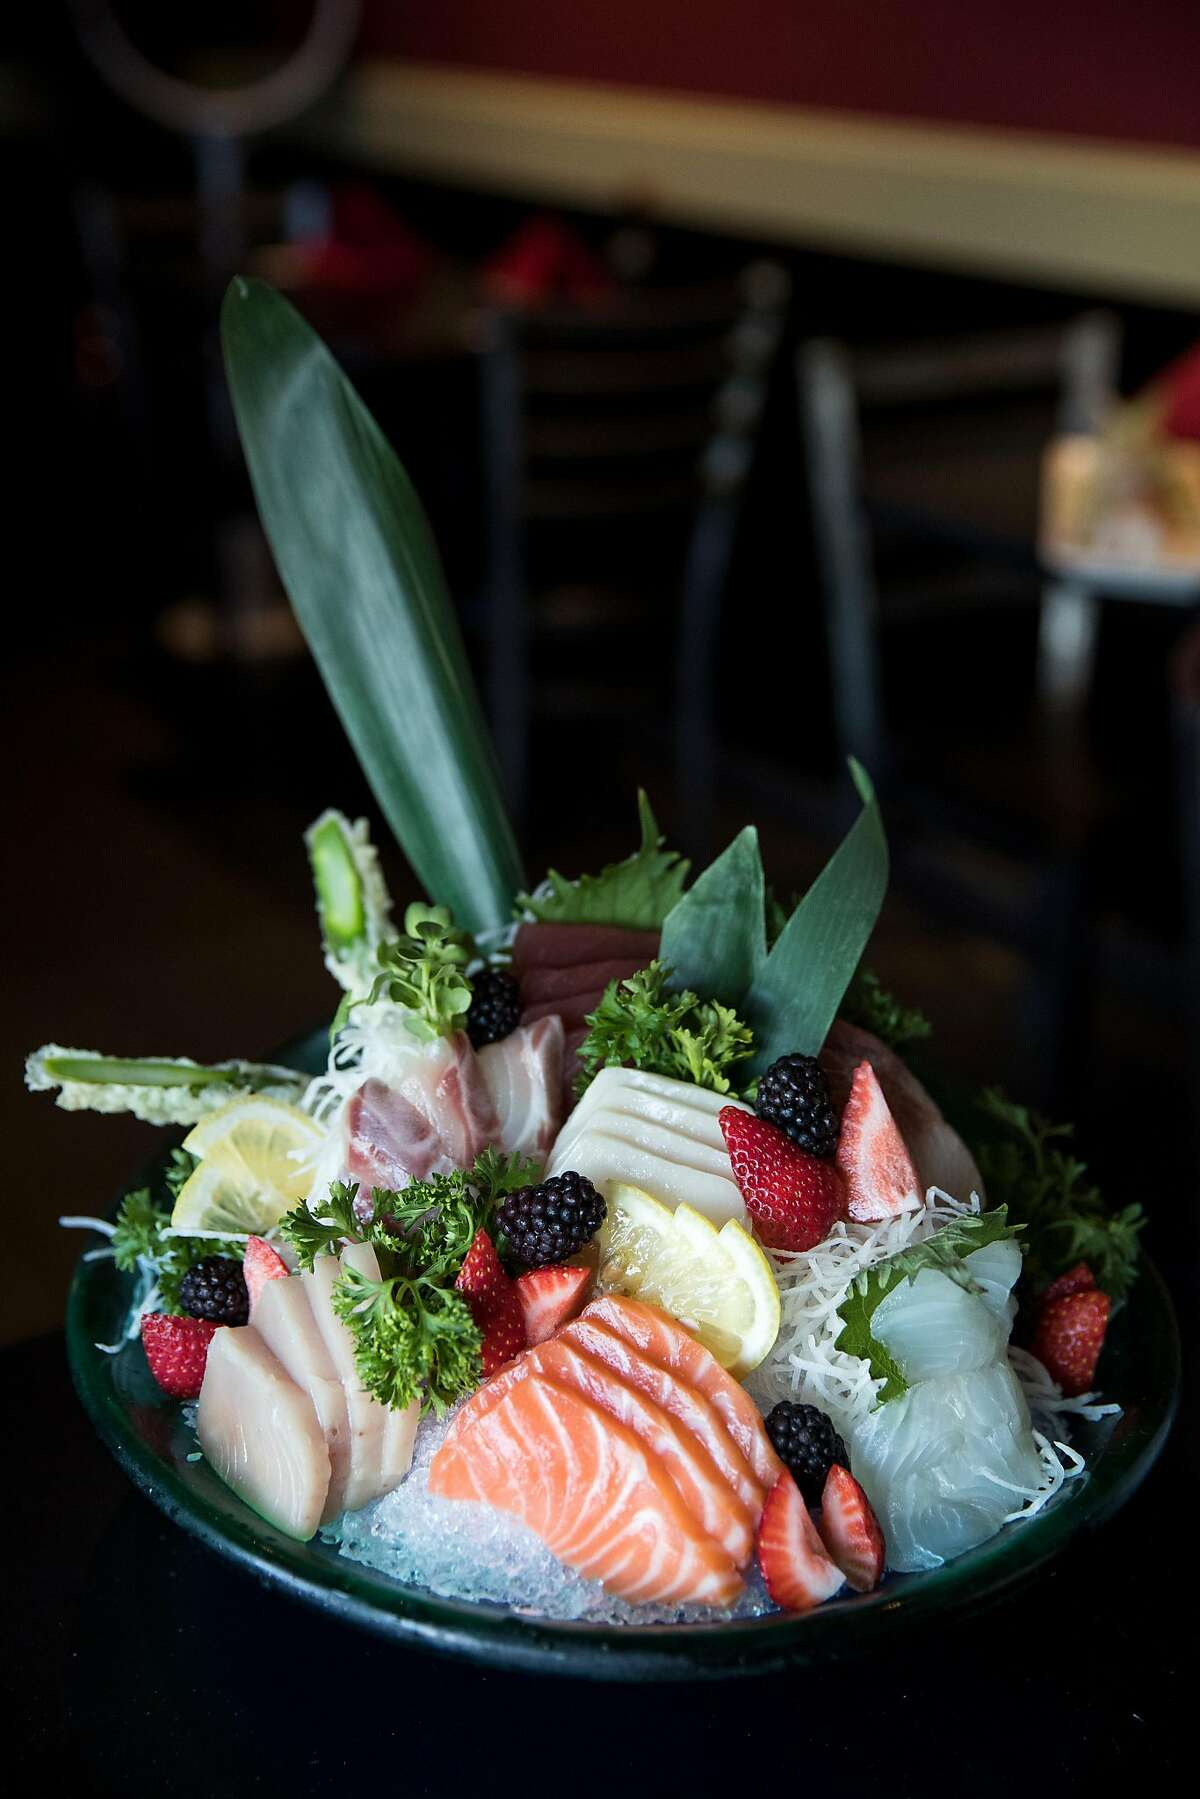 The large size sashimi plater is seen at Sushi Komachi in Lodi, Calif., on Friday, August, 18, 2017. The restaurant serves classic and creative sushi rolls as well as traditional Japanese entrees.